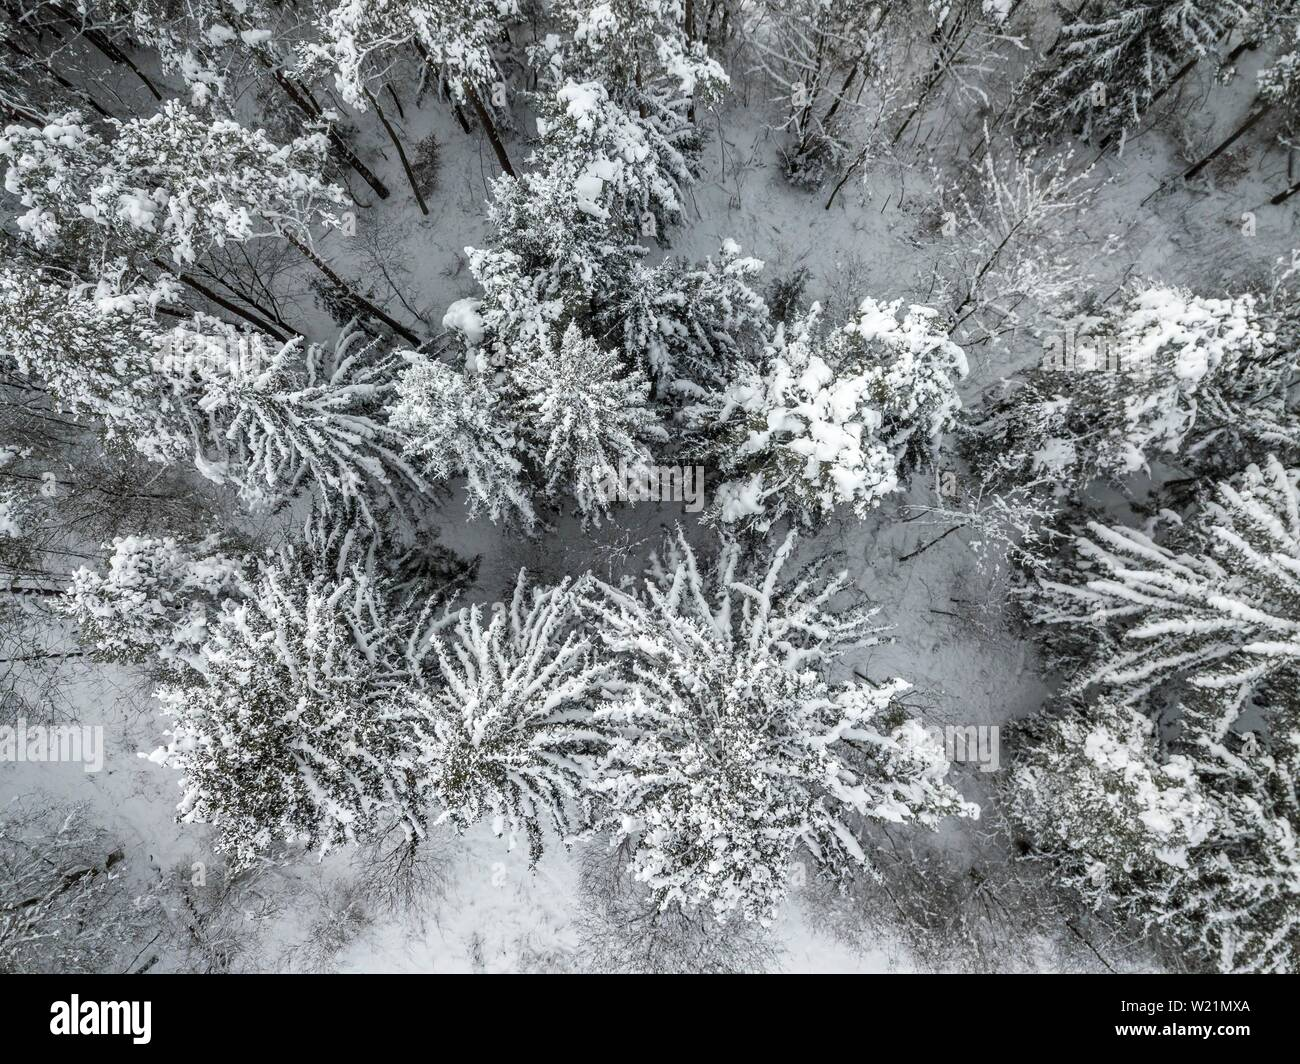 Snow-covered spruce forest from above, bird's eye view, Bavaria, Germany Stock Photo